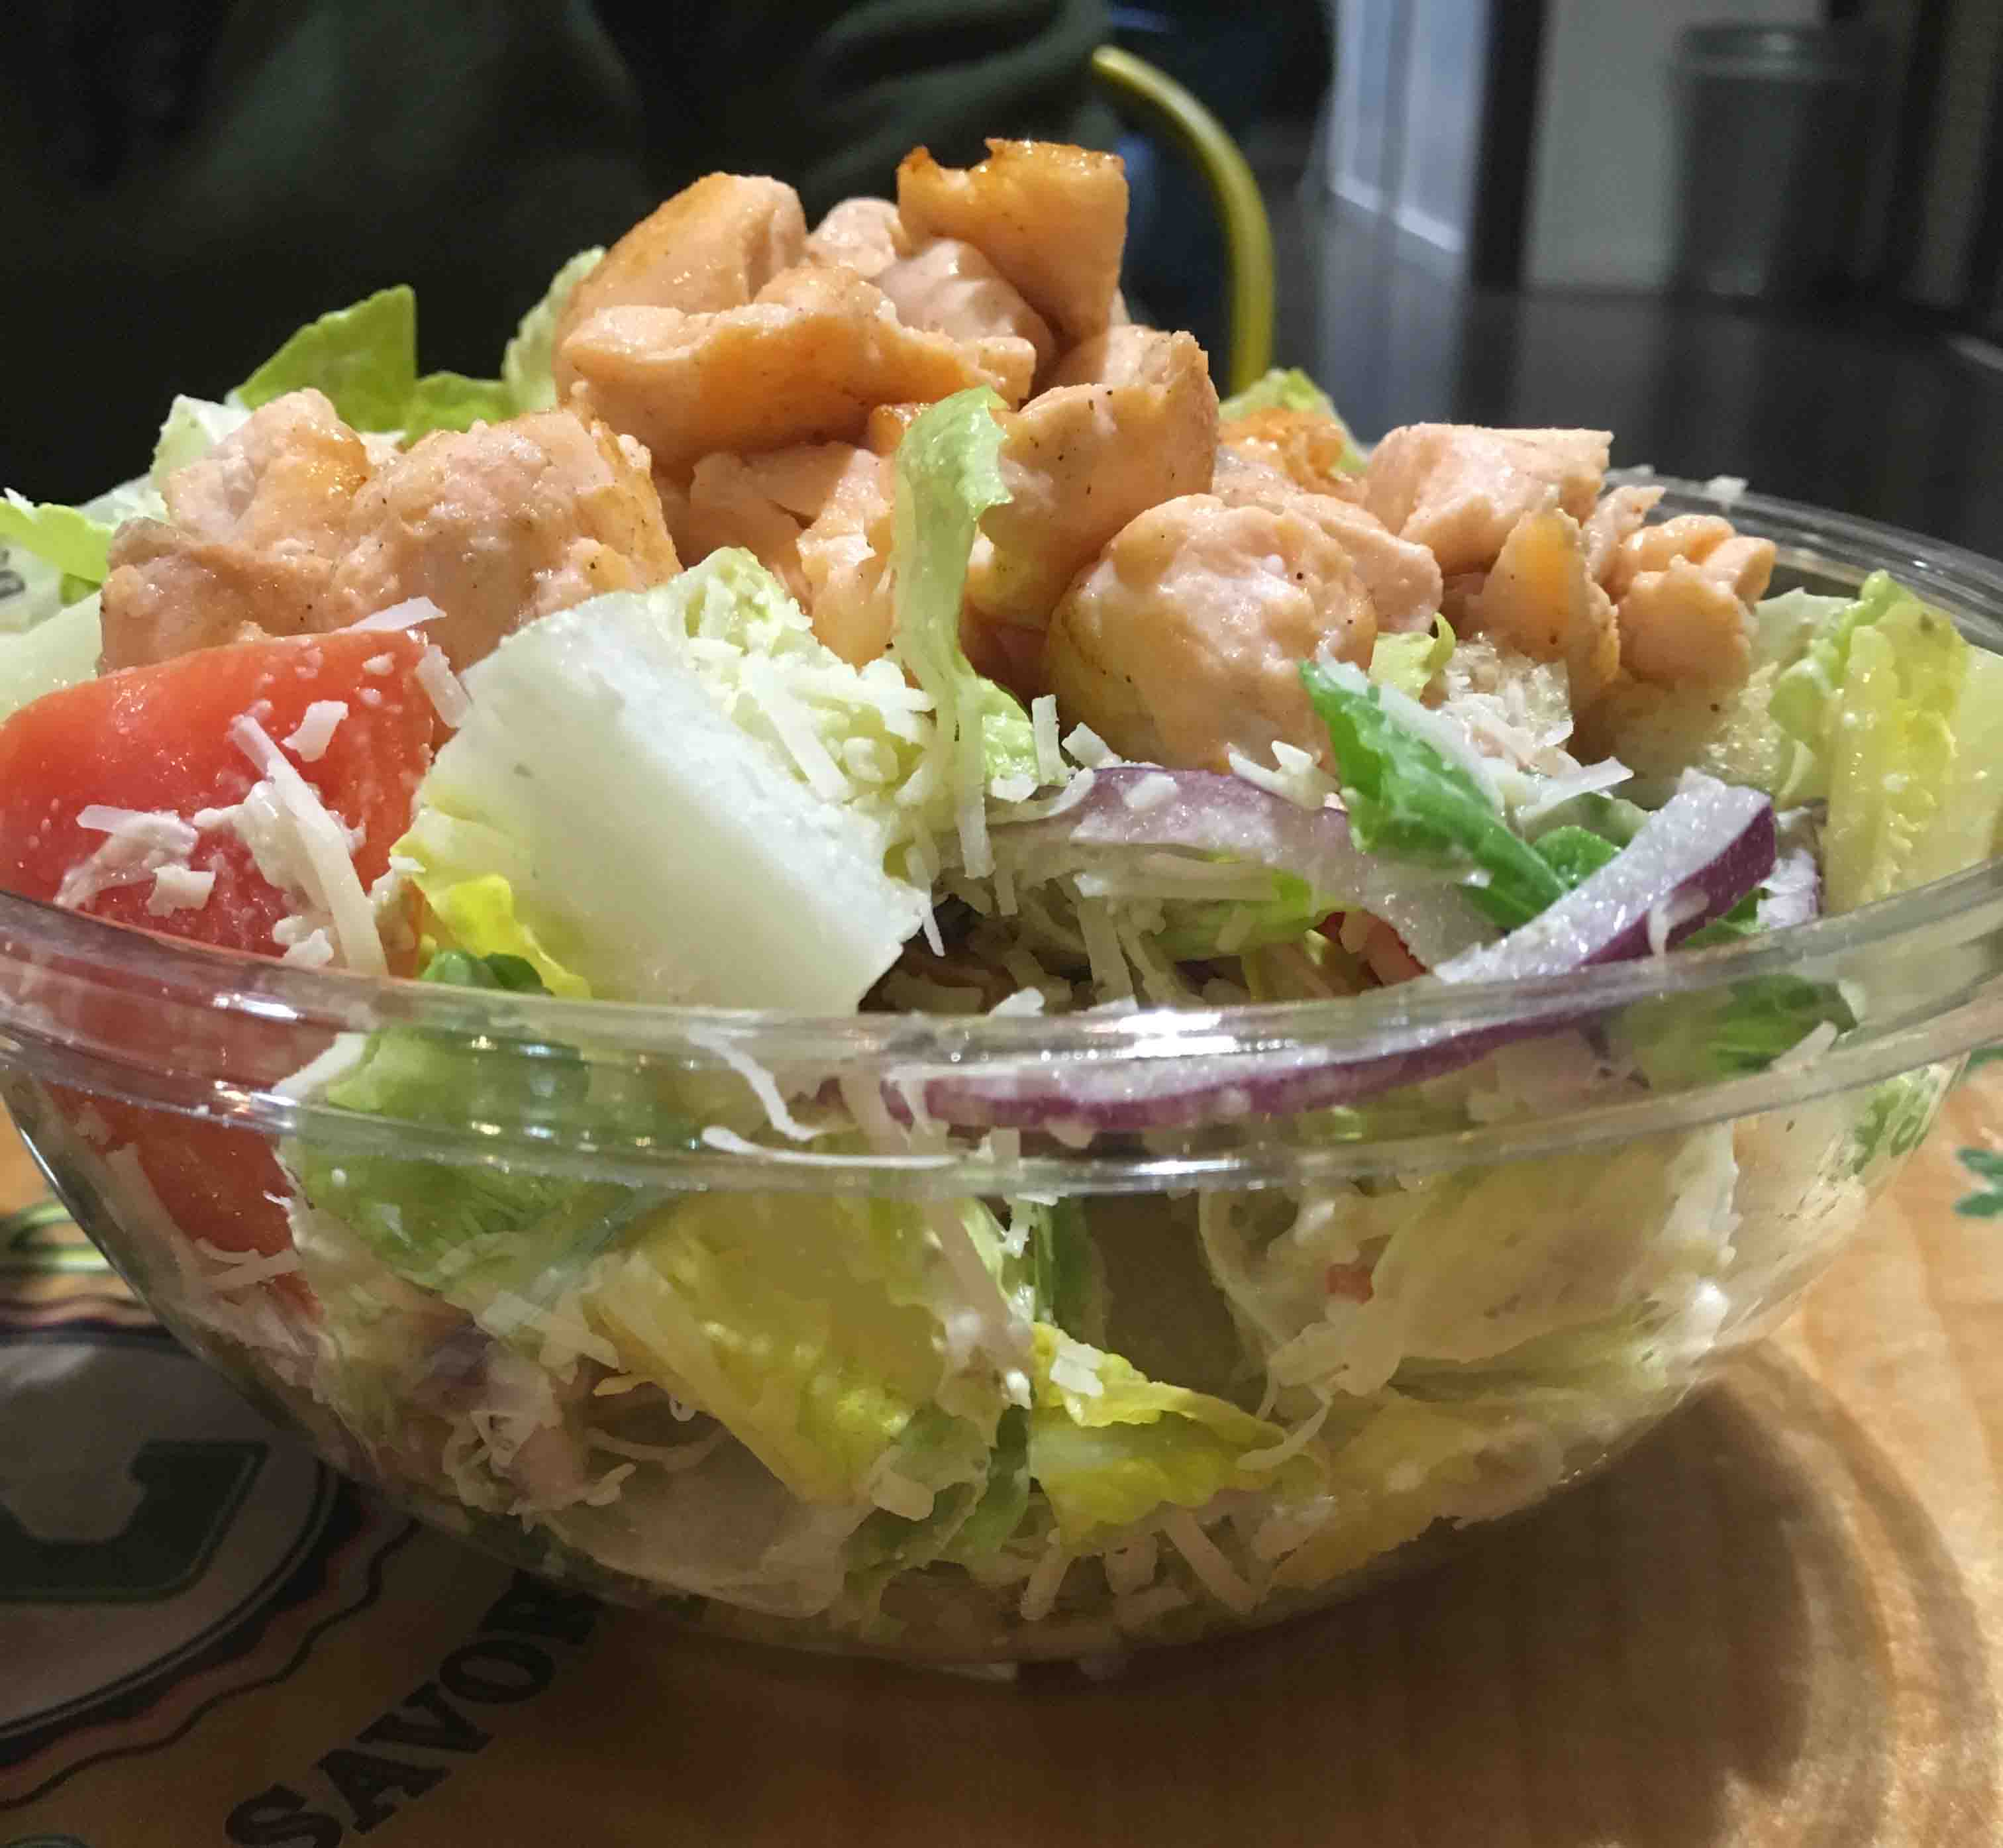 Salads are just the beginning of the healthy options offered at Market 2 Plate.